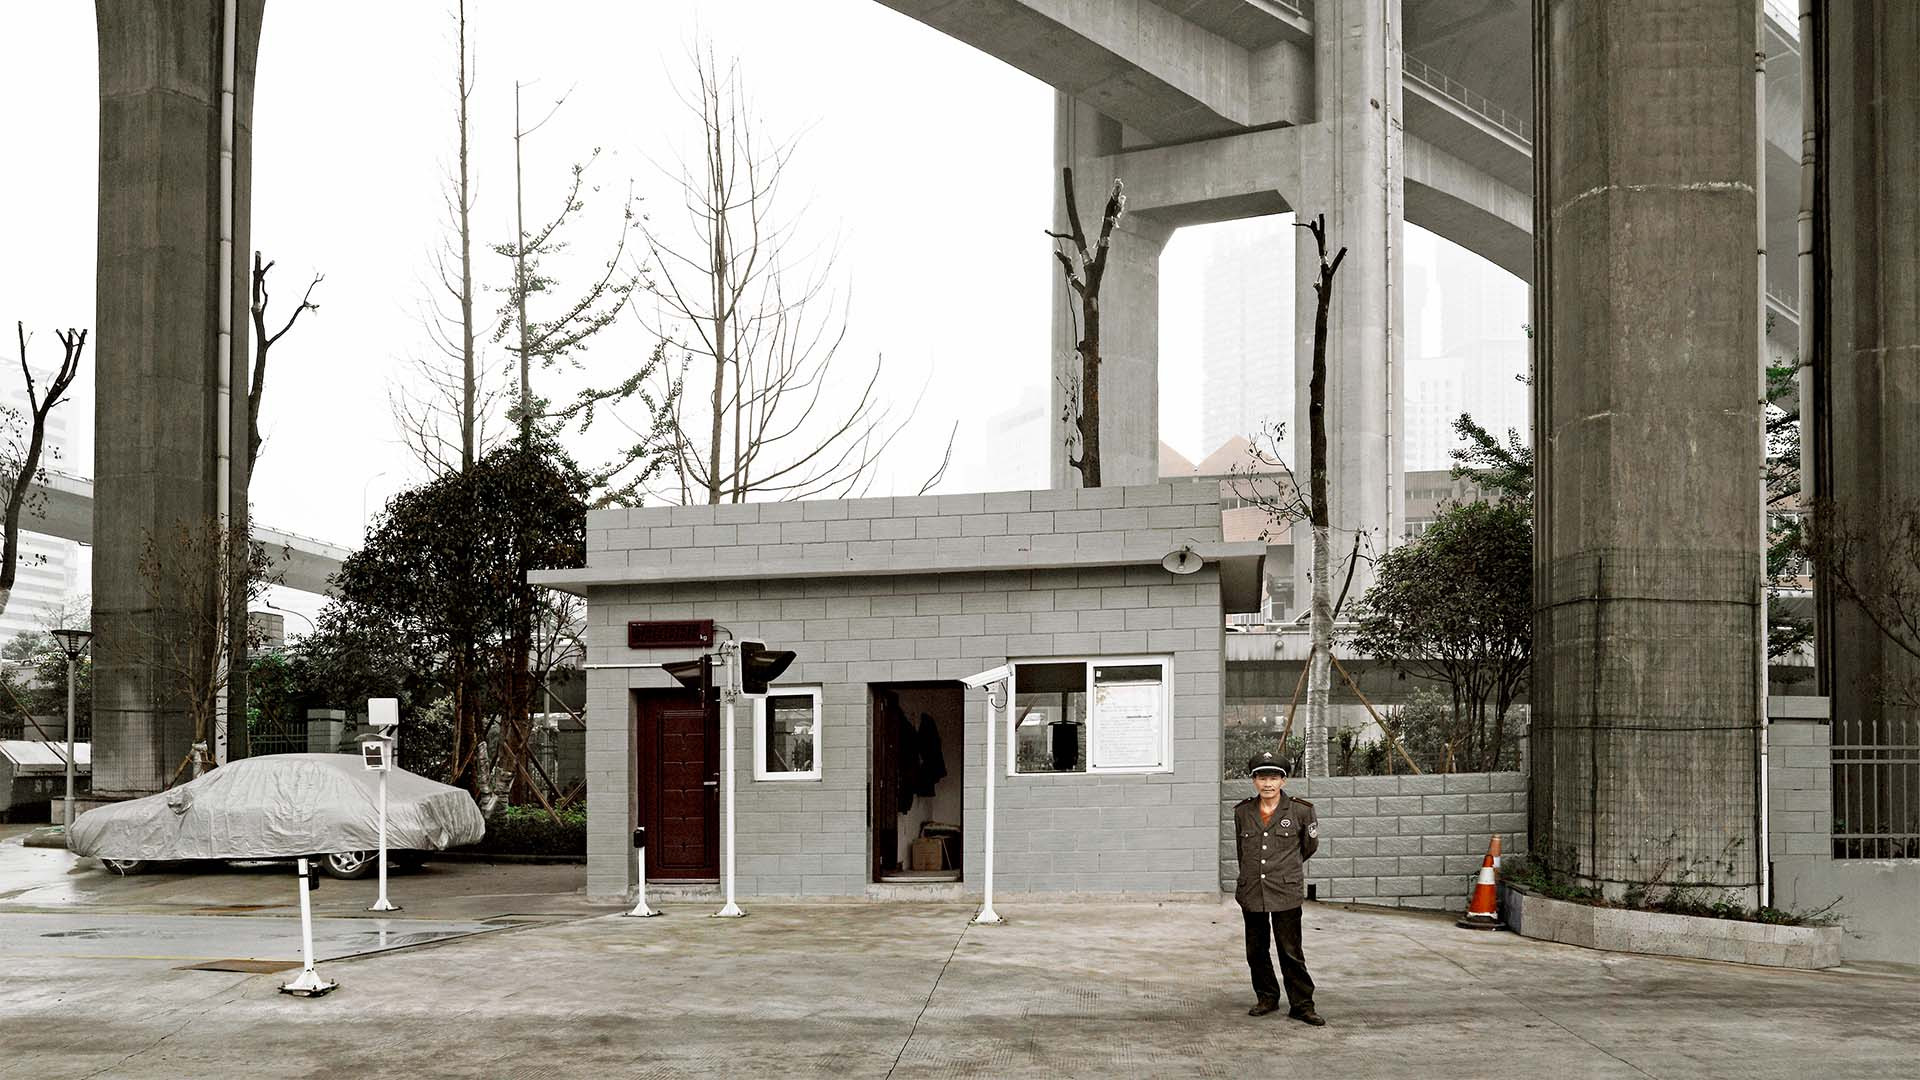 Yuzhong flyover, from Gisela Erlacher's Skies of Concrete